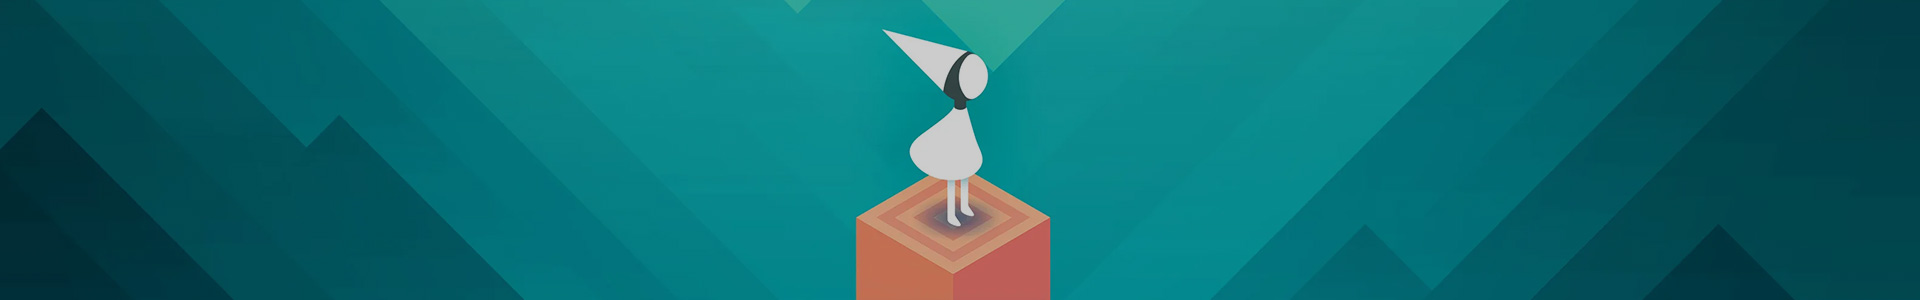 Banner media of Monument Valley video game.